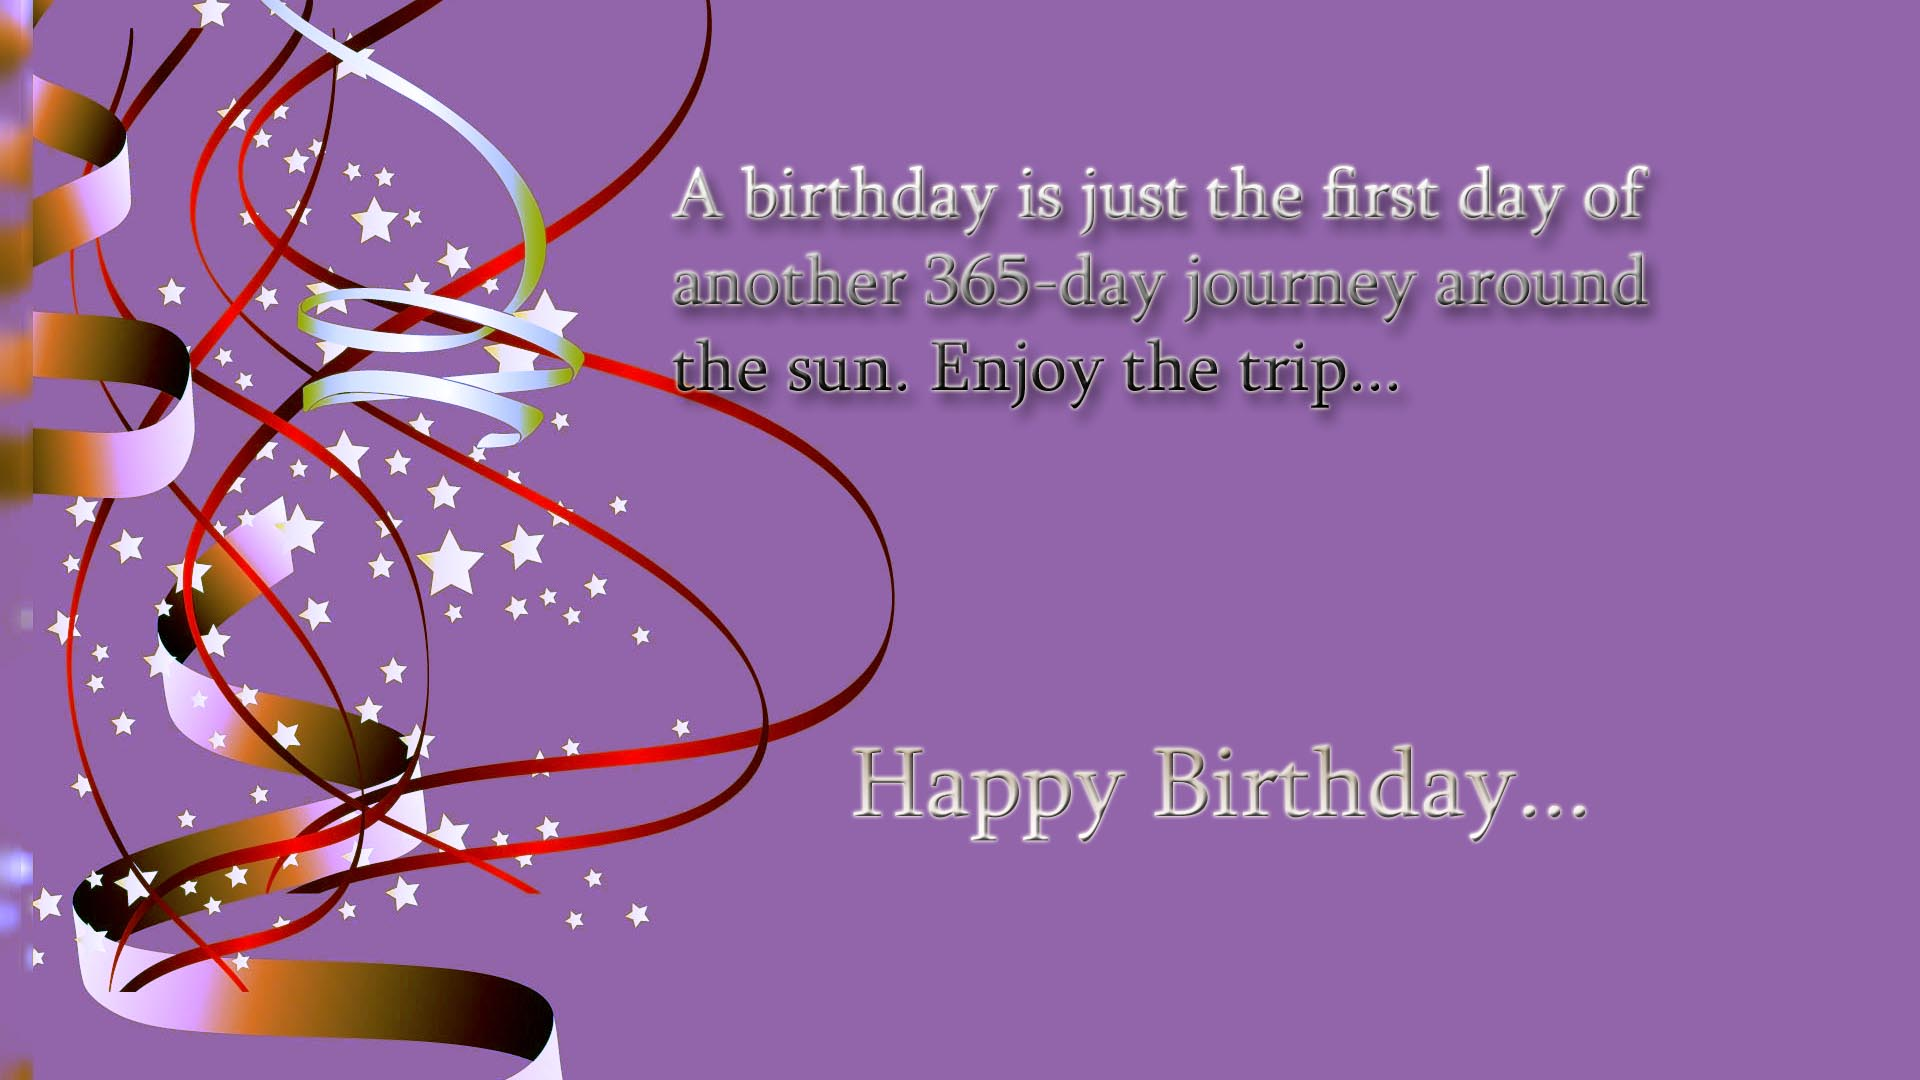 birthday images with quotes free download ; Happy-Birthday-Greetings-Wishes-HD-free-Download